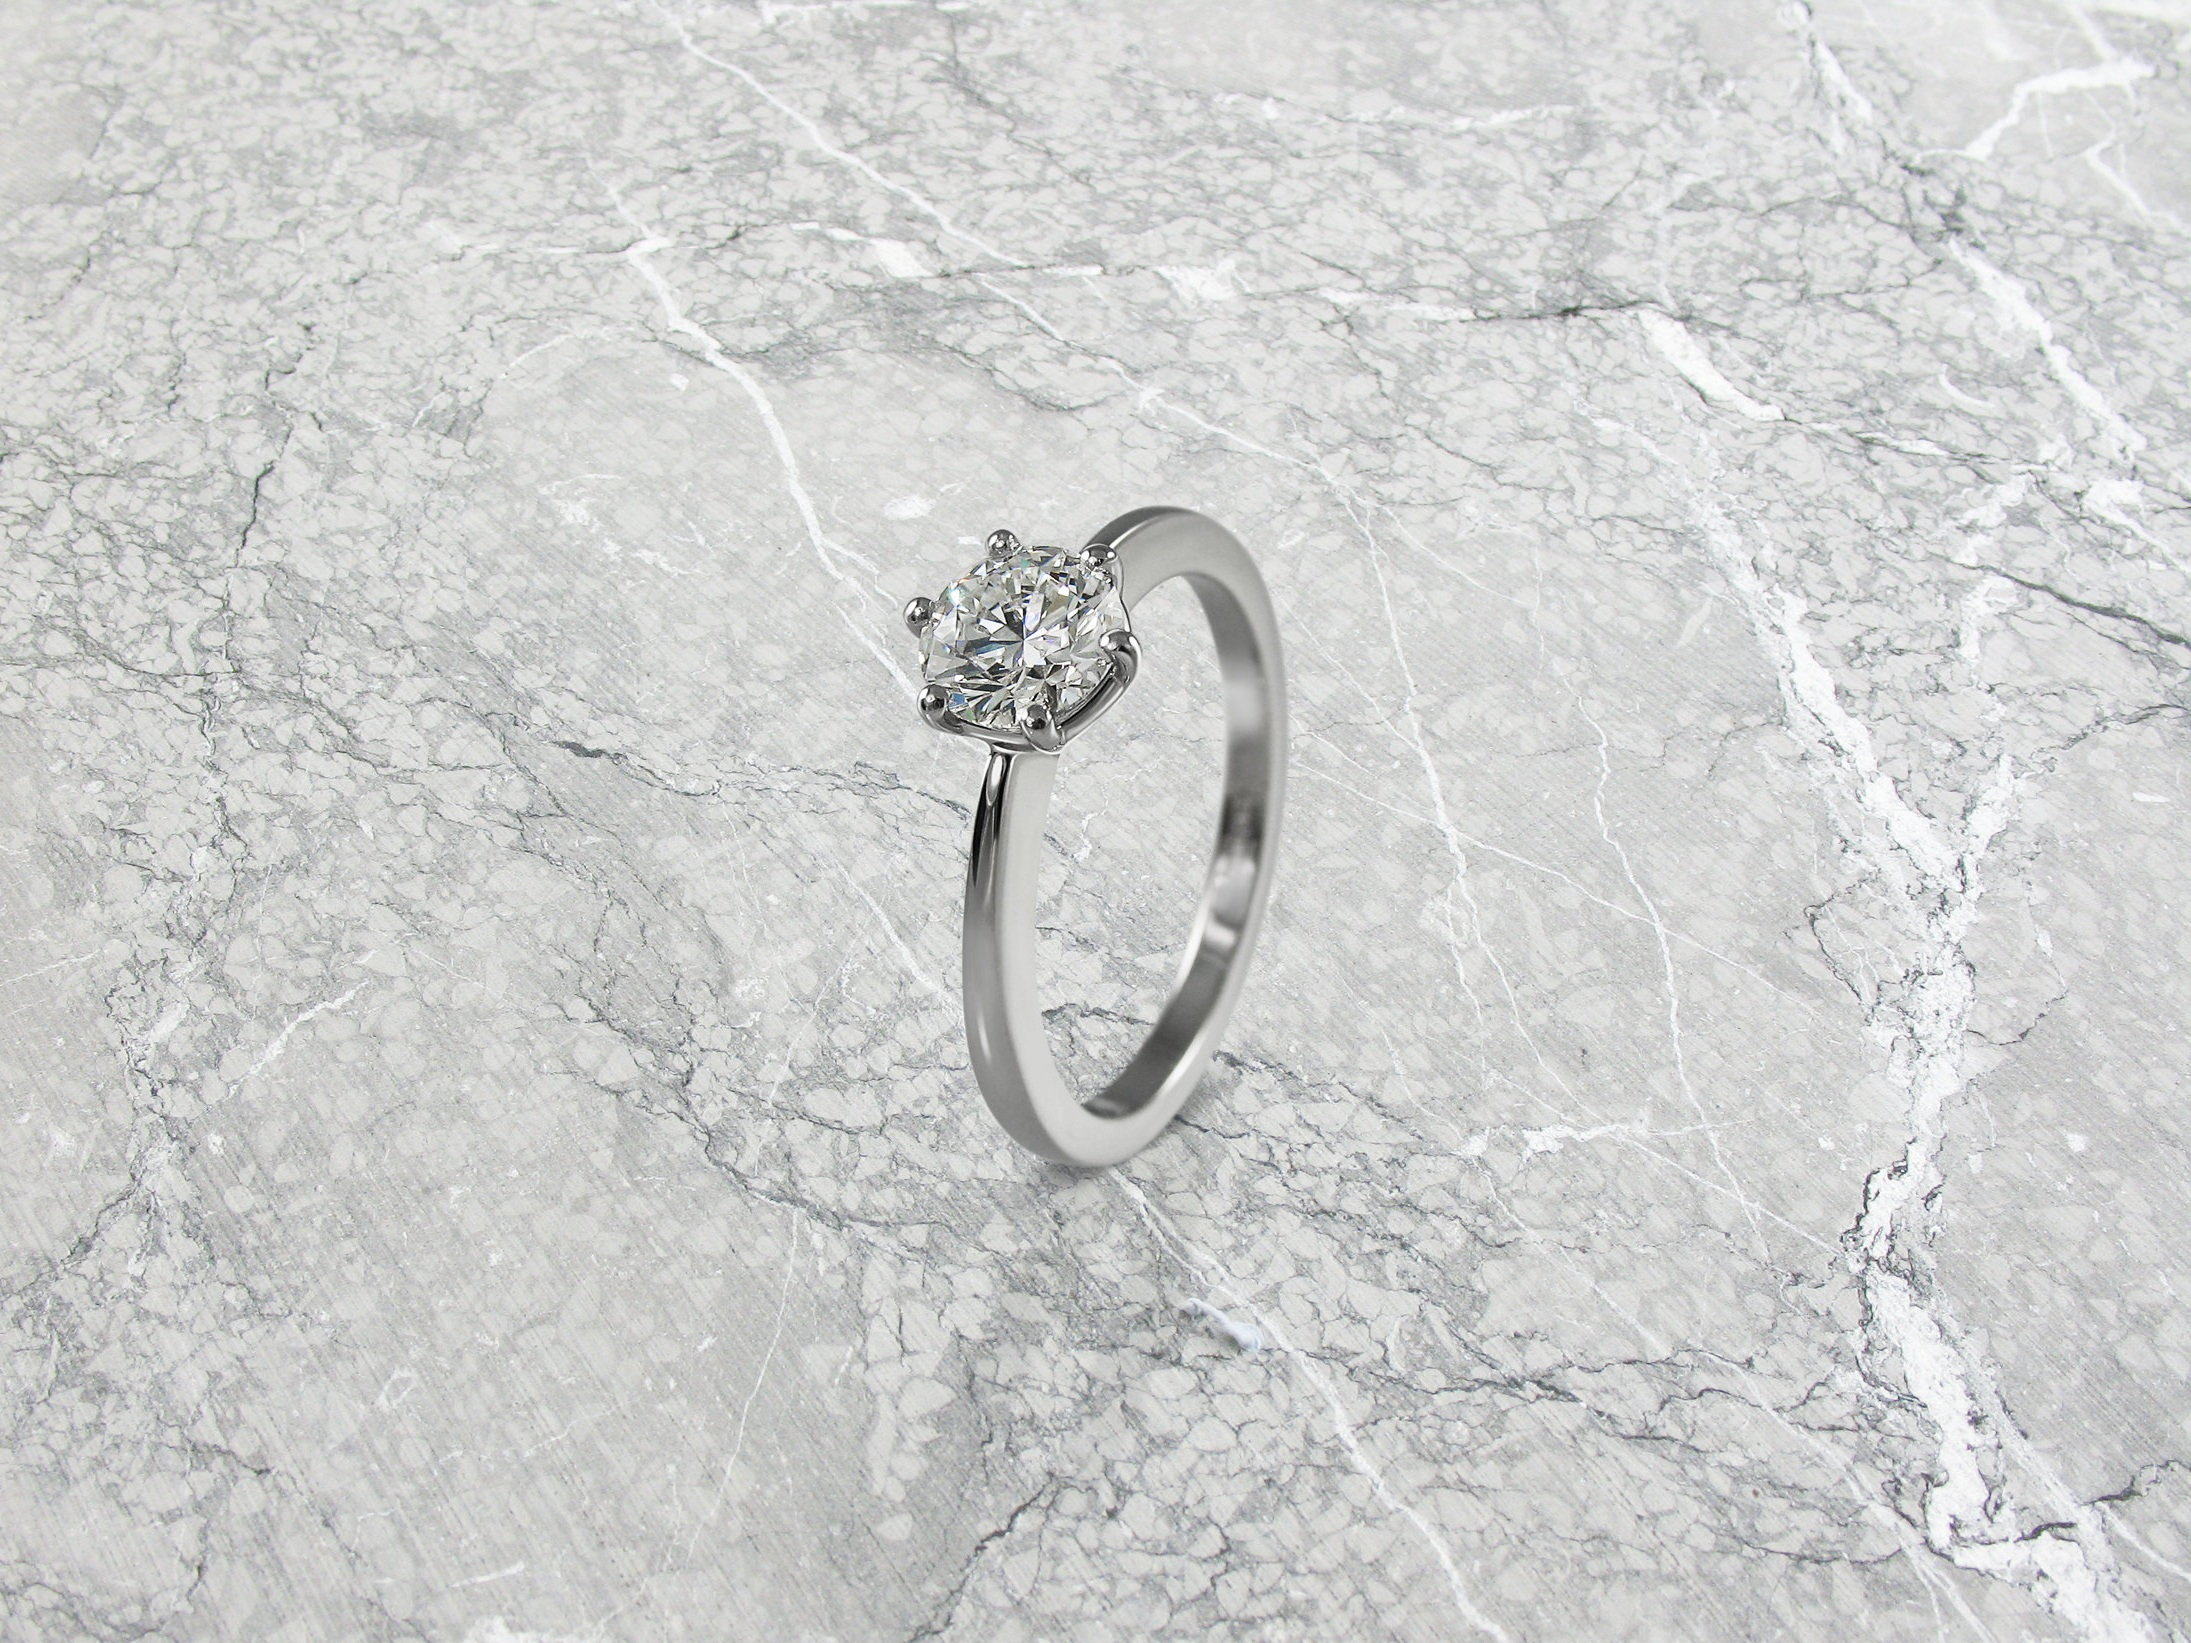 round+brilliant+cut+diamond+six+claw+solitaire+engagement+ring+2.jpg